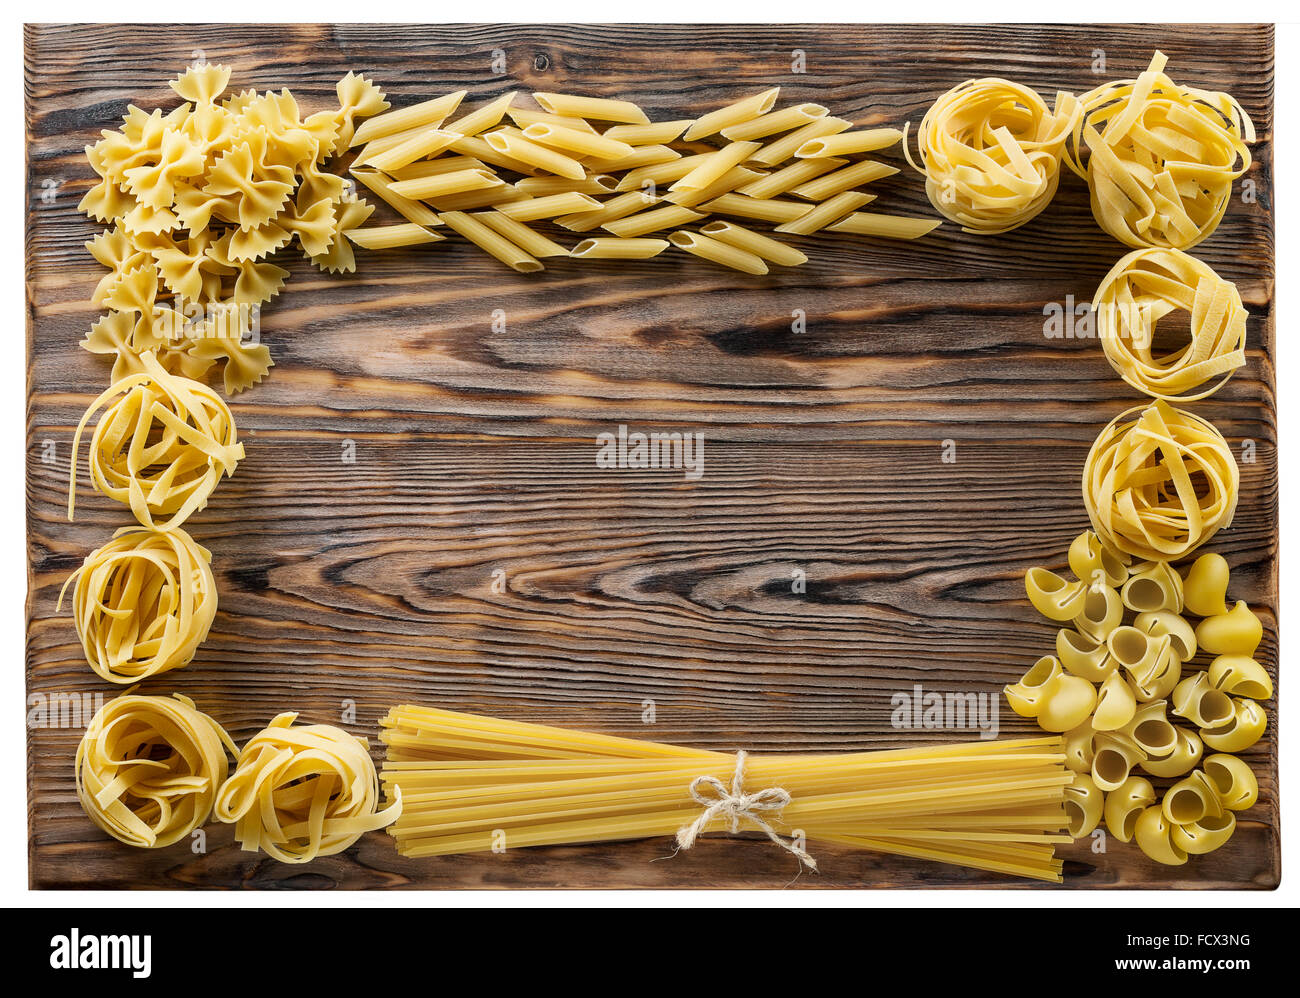 Variety of types and shapes of Italian pasta on wooden background. Stock Photo